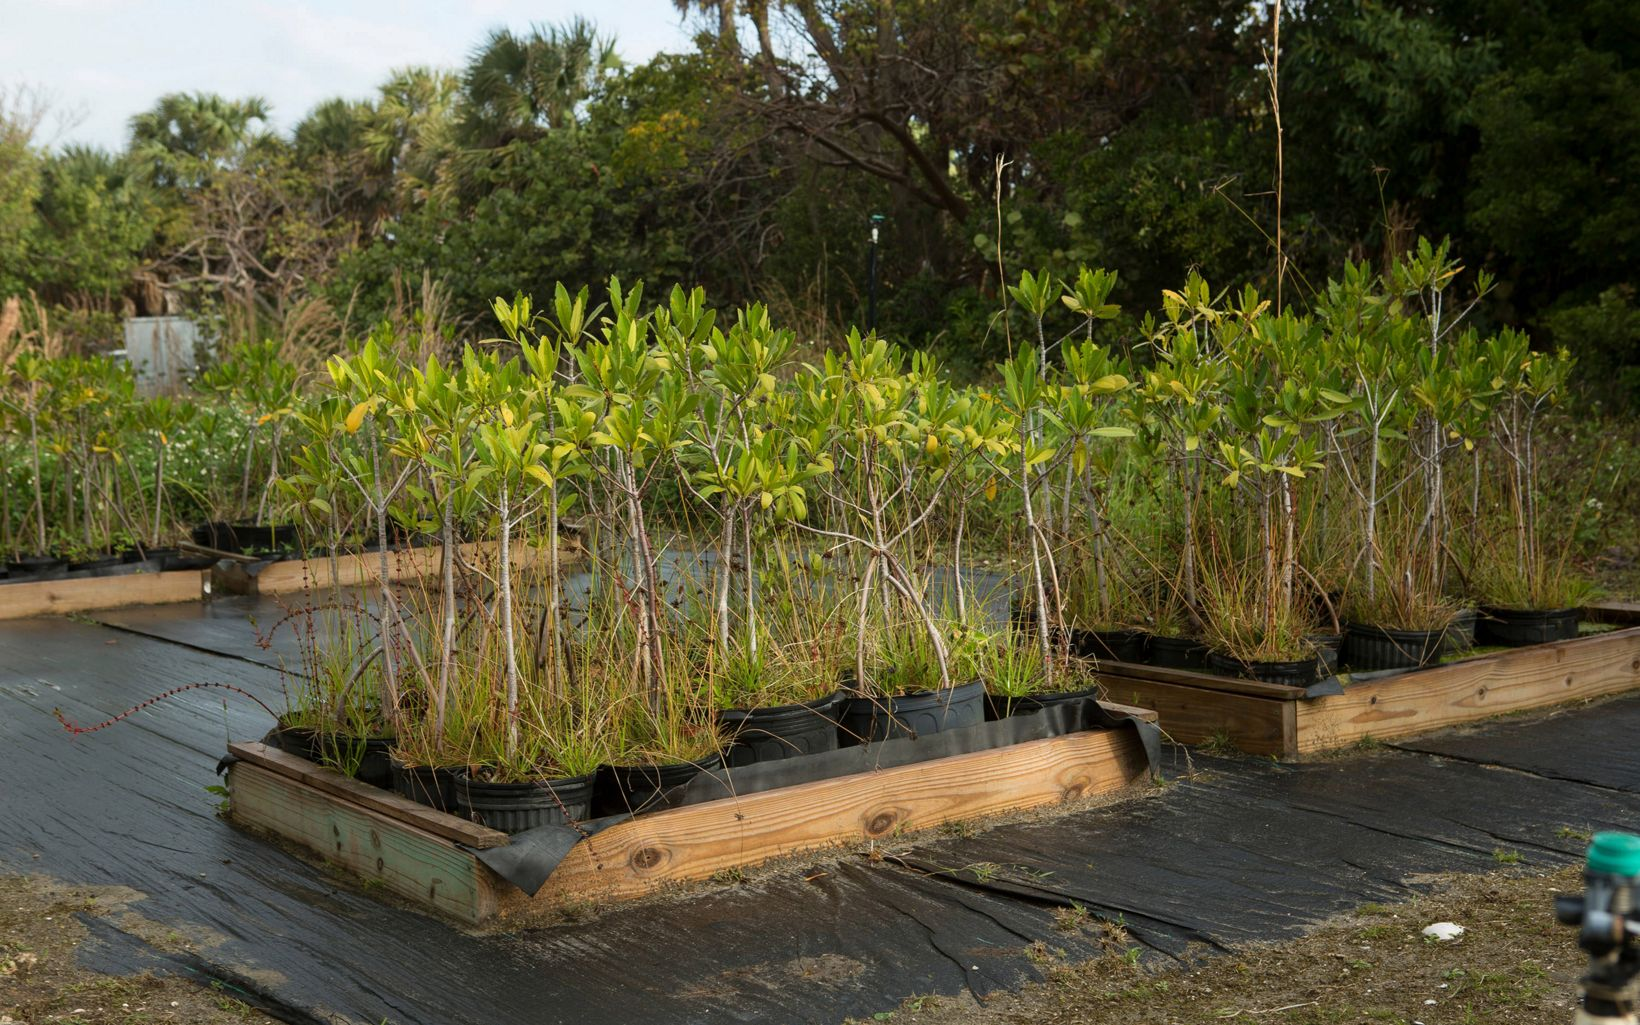 Mangroves grow in pots at the Blowing Rocks Preserve plant nursery.